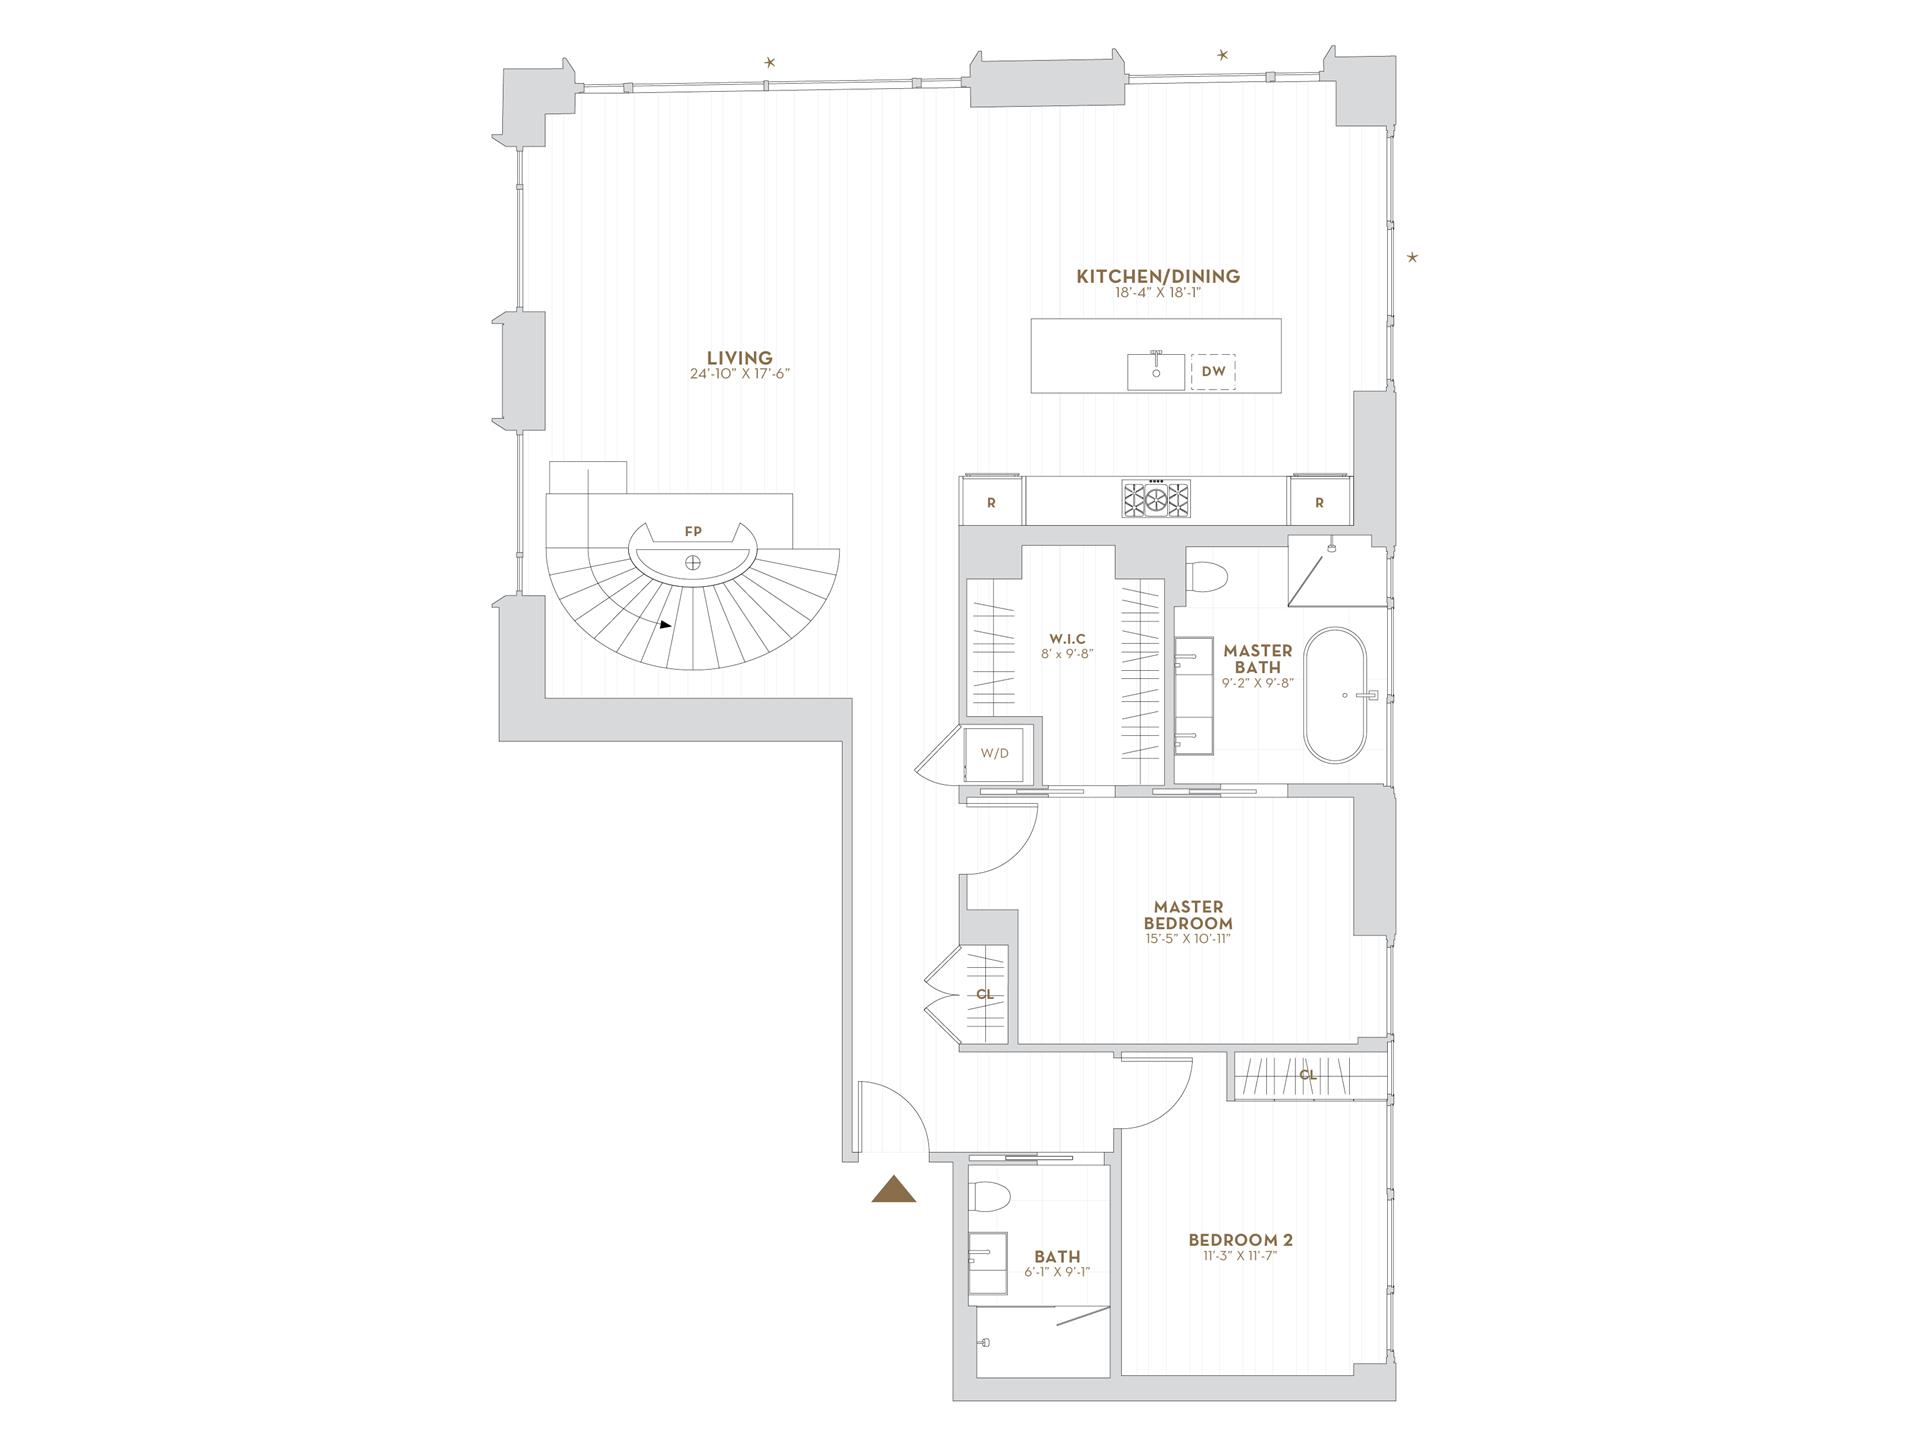 Floor plan of 75 Kenmare Street, PHC - NoHo, New York